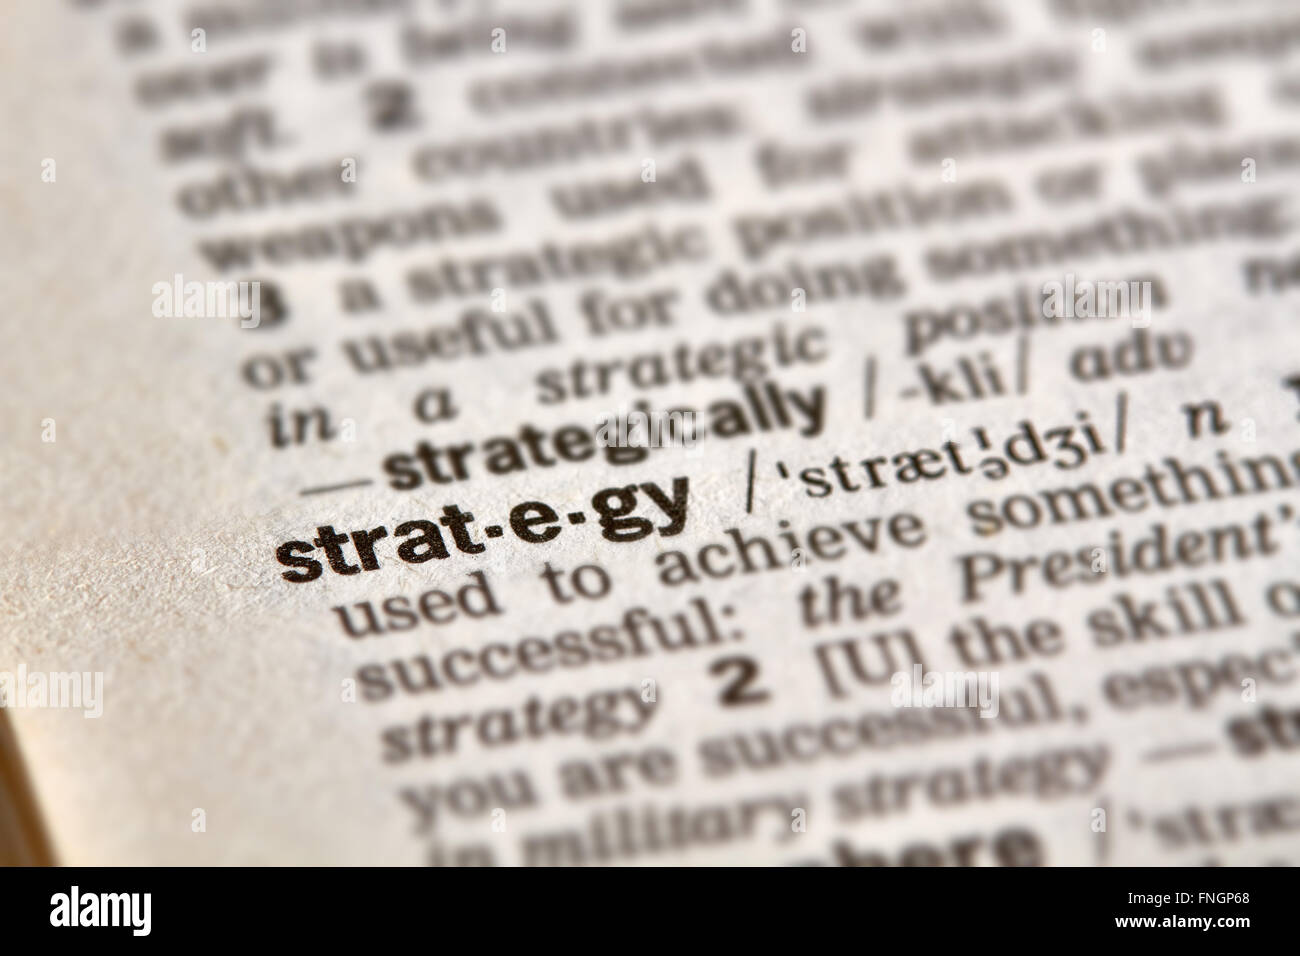 Strategy Word Definition Text in Dictionary Page - Stock Image